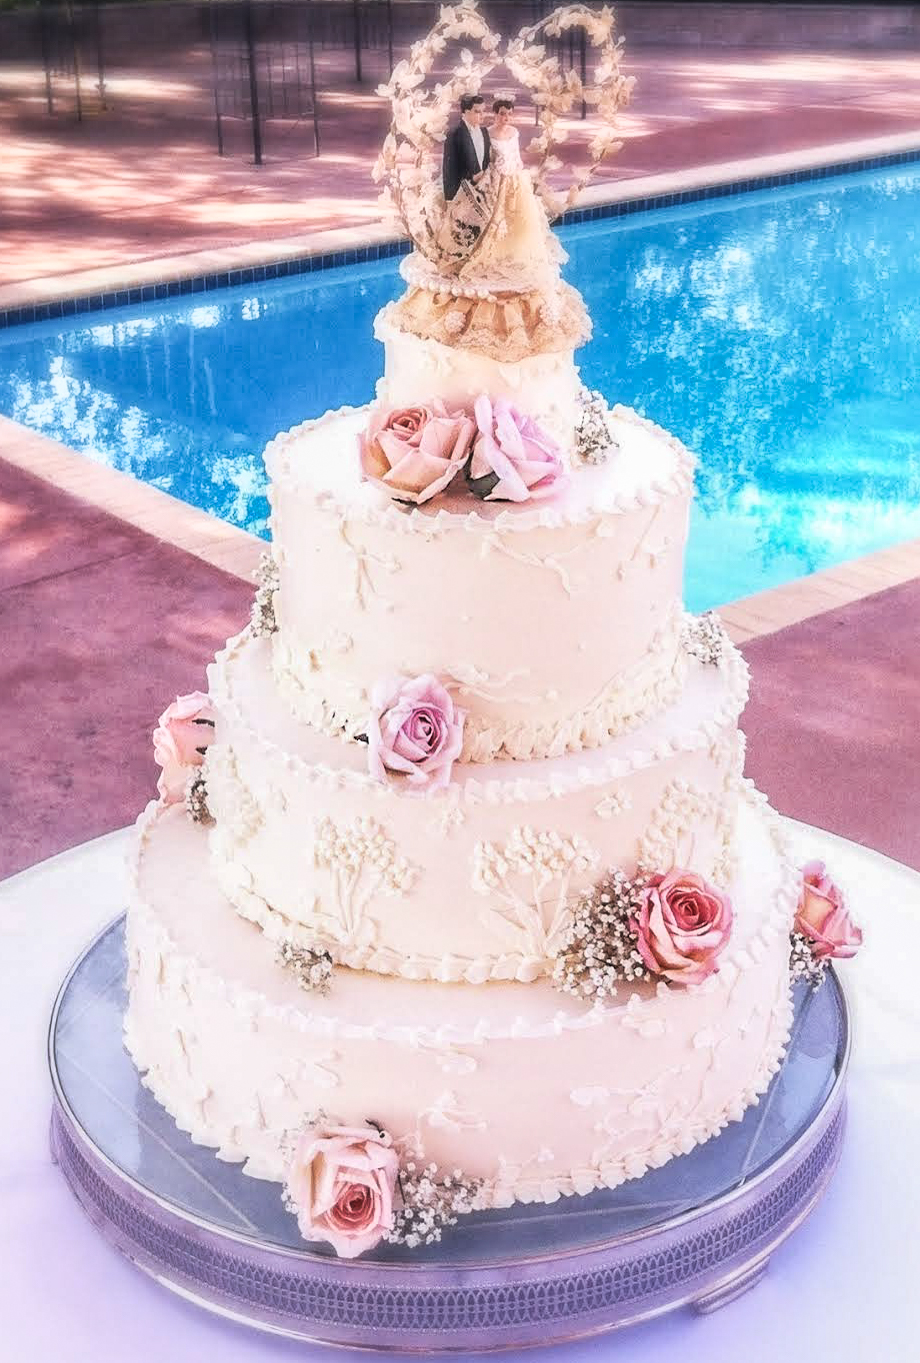 Cakes-Wedding-Special-Event-Designer-Gourmet-Cakes-Marie-Shannon-Confections-1.jpg